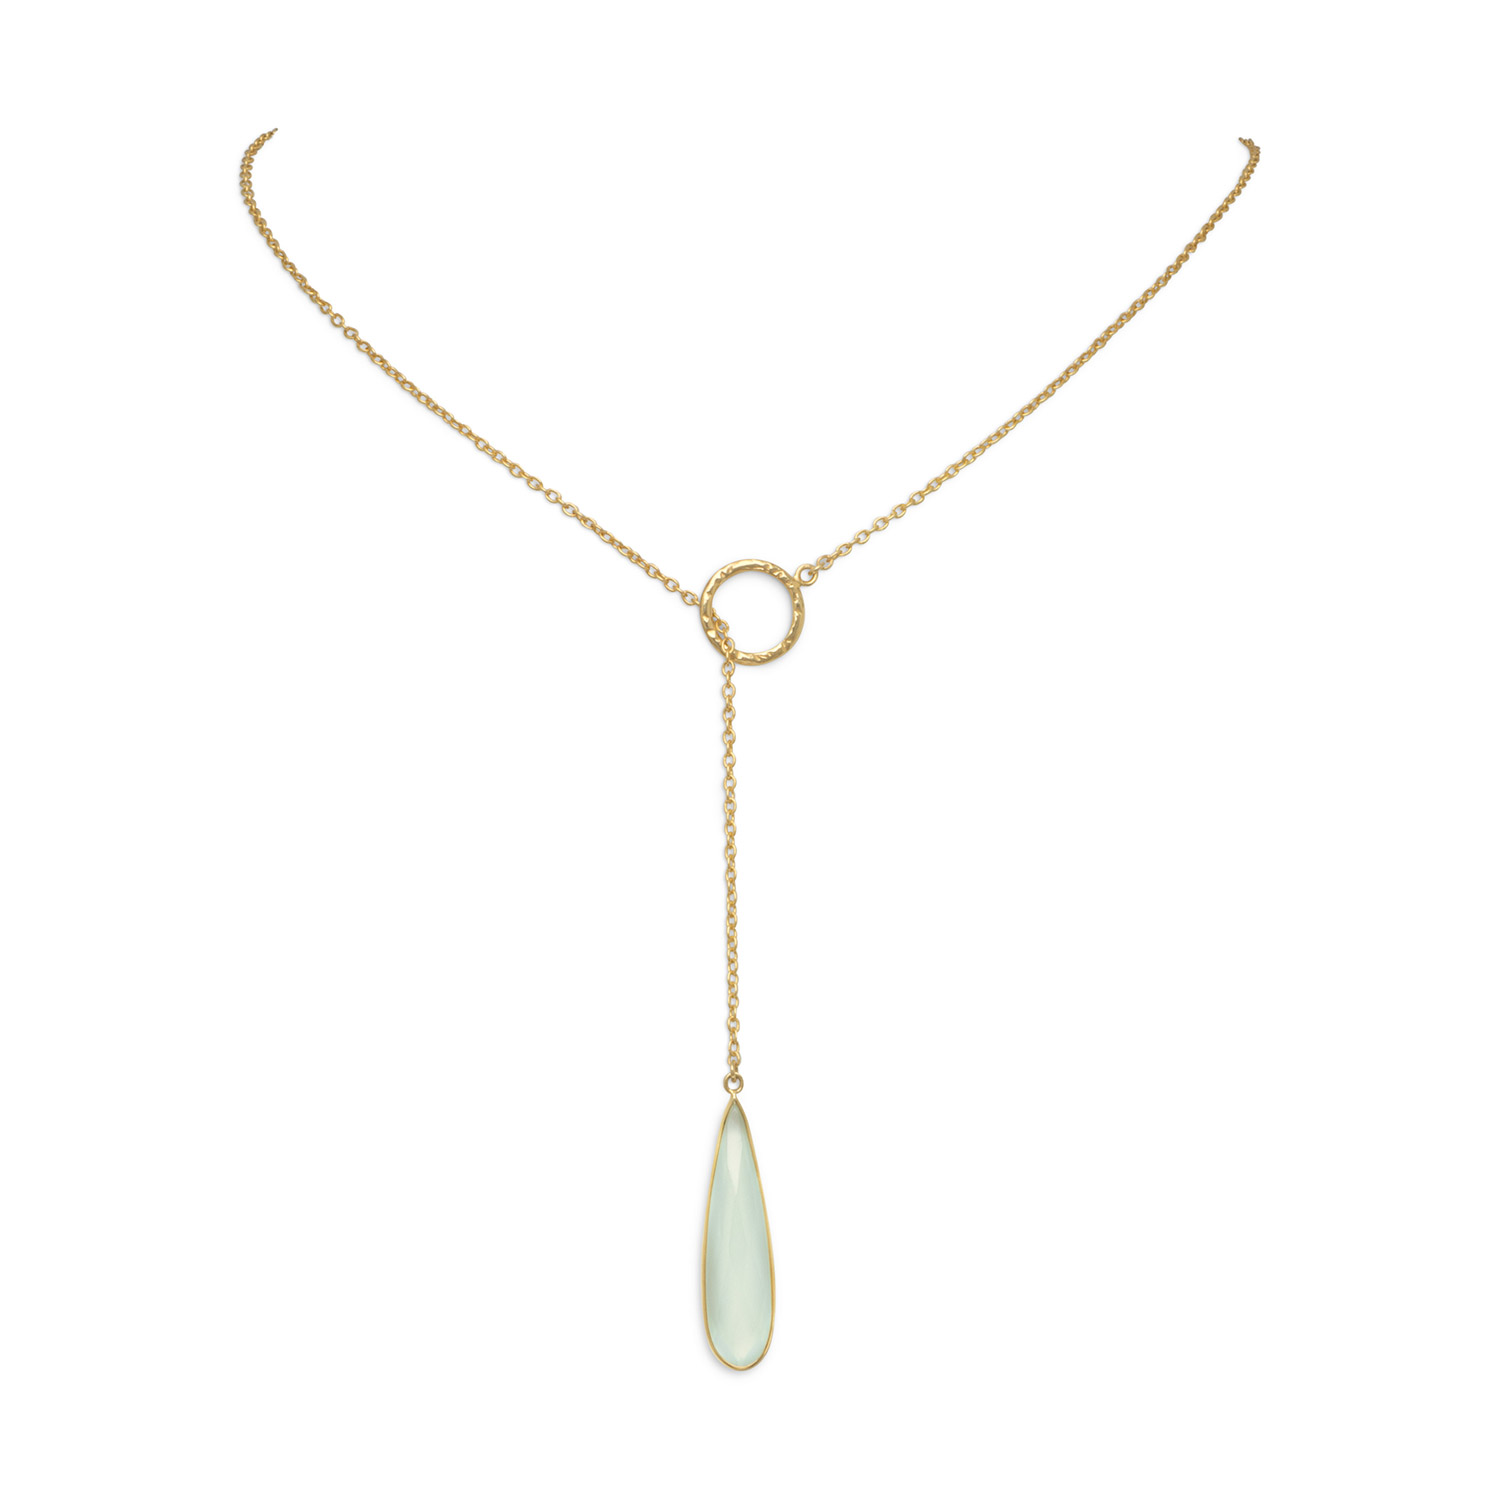 24 Inch Gold-Flashed Sterling Silver Lariat Style Necklace Faceted Chalcedony Drop by